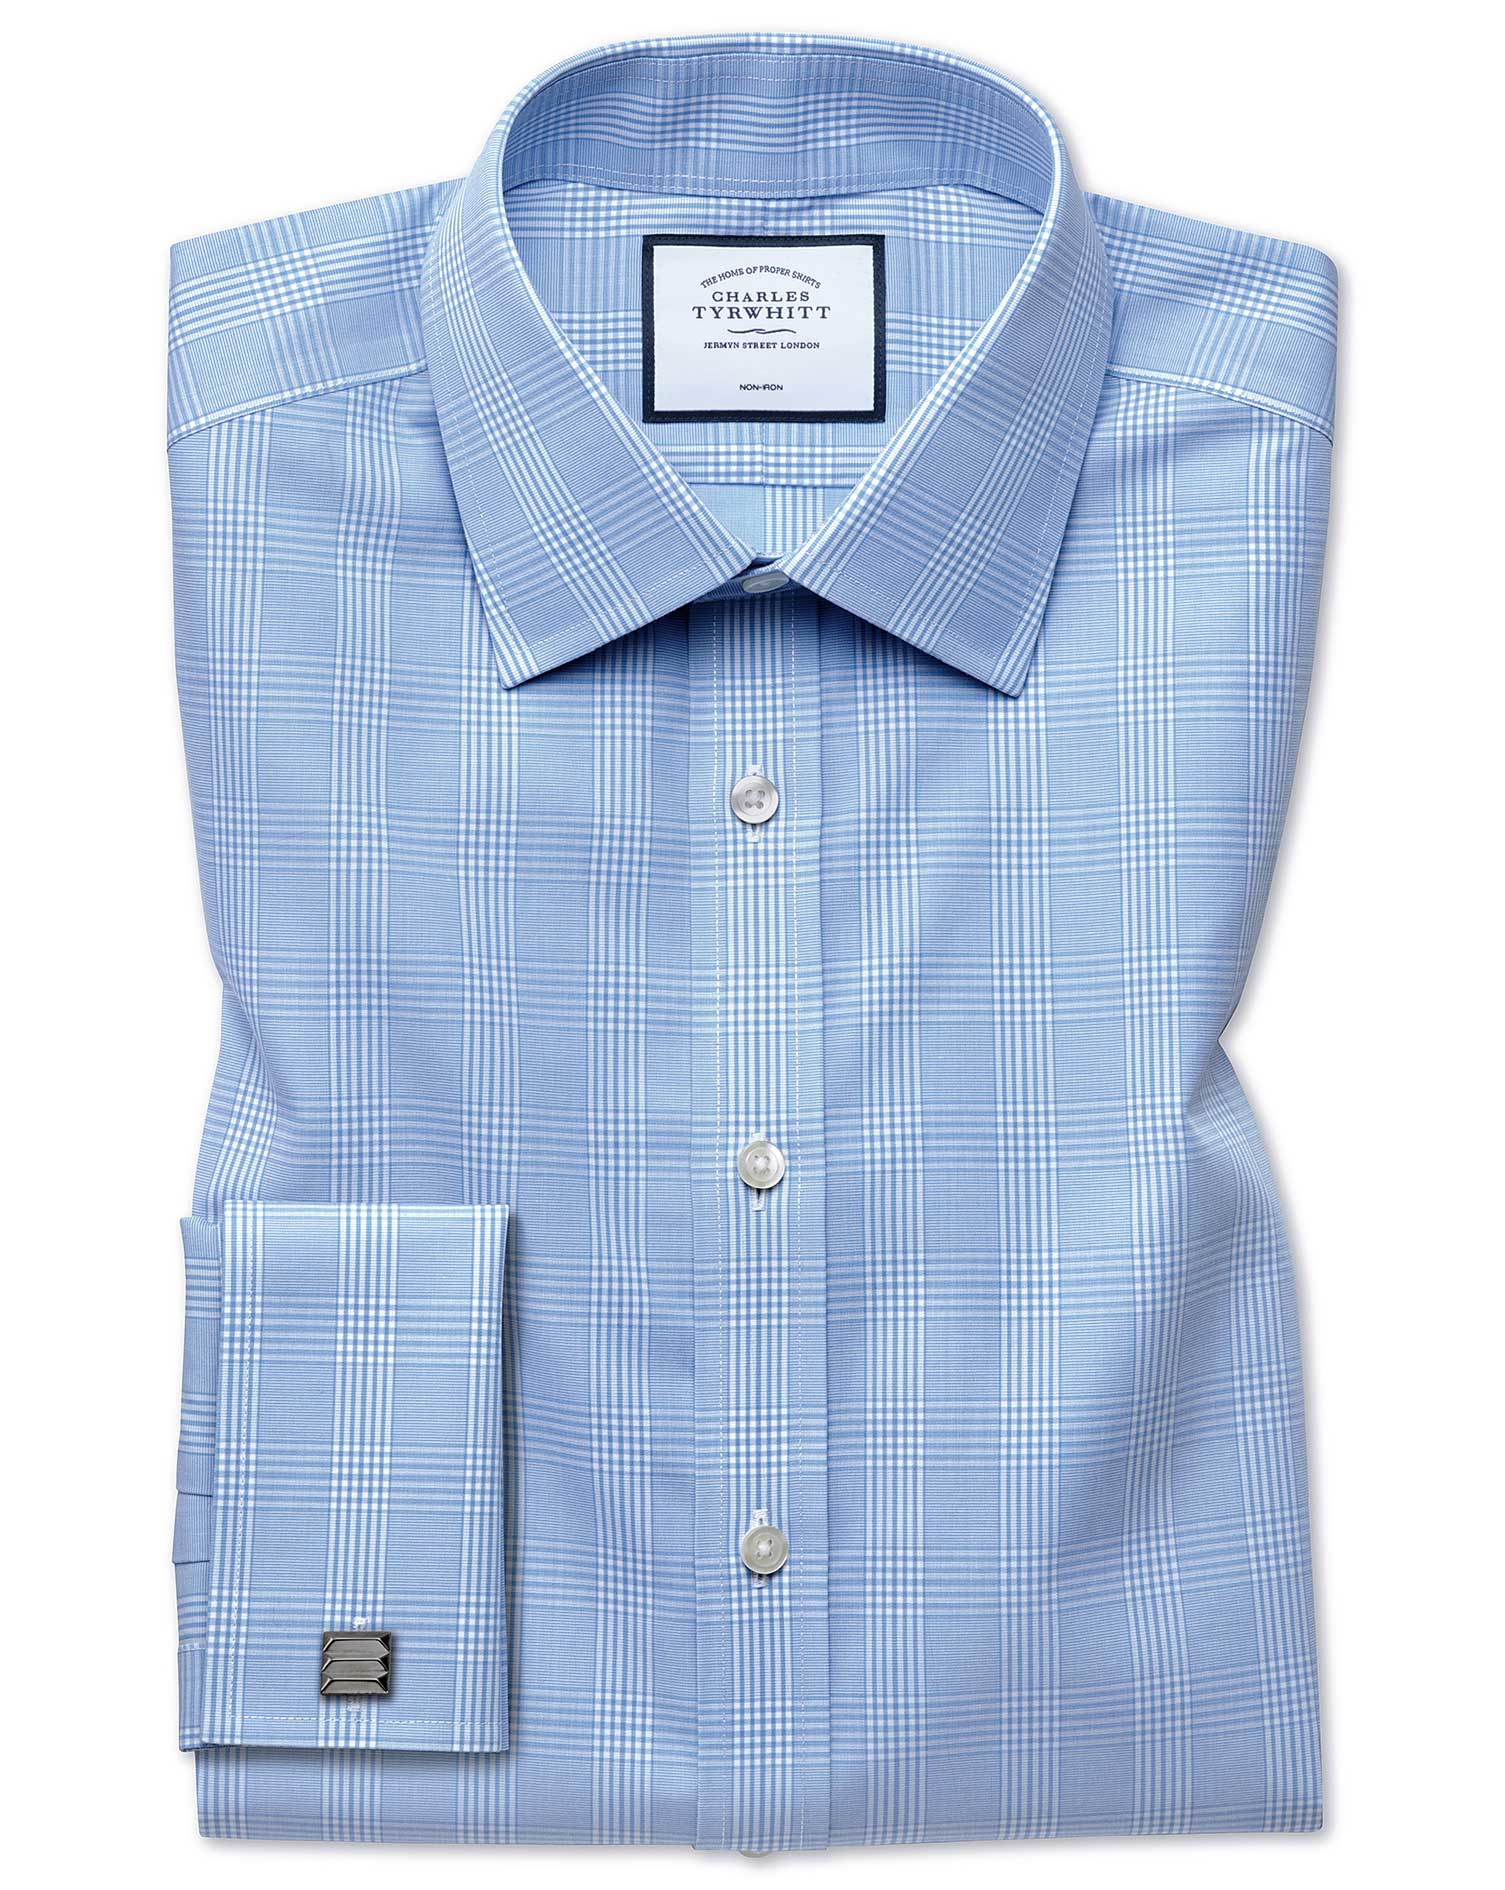 Slim Fit Non-Iron Prince Of Wales Sky Blue Cotton Formal Shirt Single Cuff Size 15.5/33 by Charles T